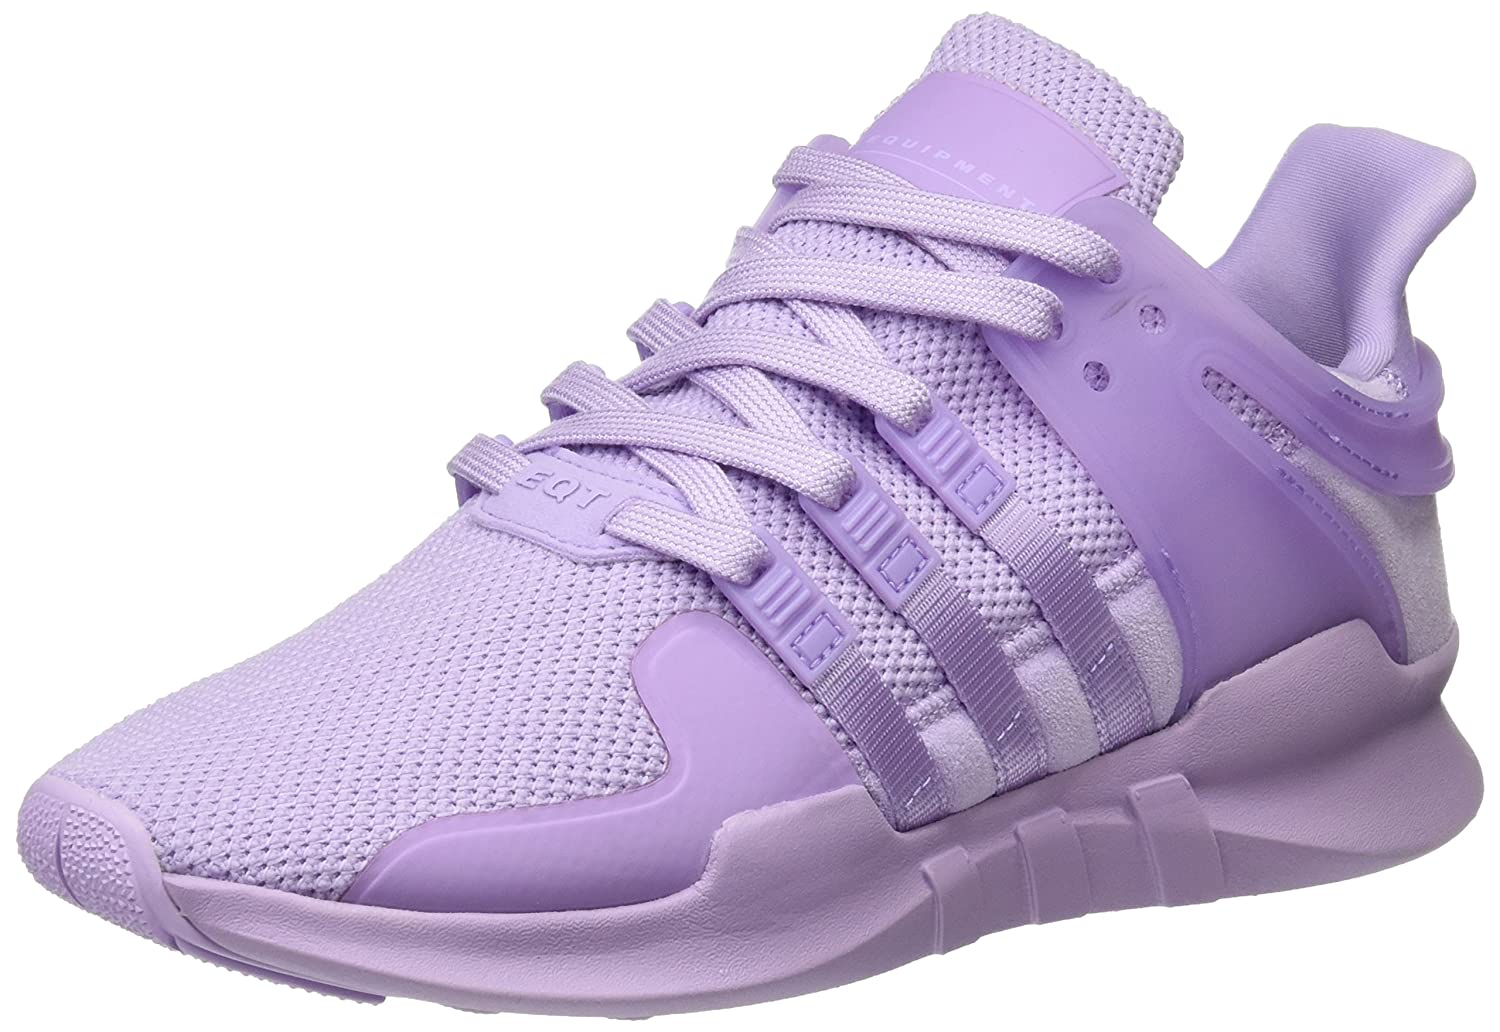 adidas Originals EQT Support Adv Sneaker In Lilac at